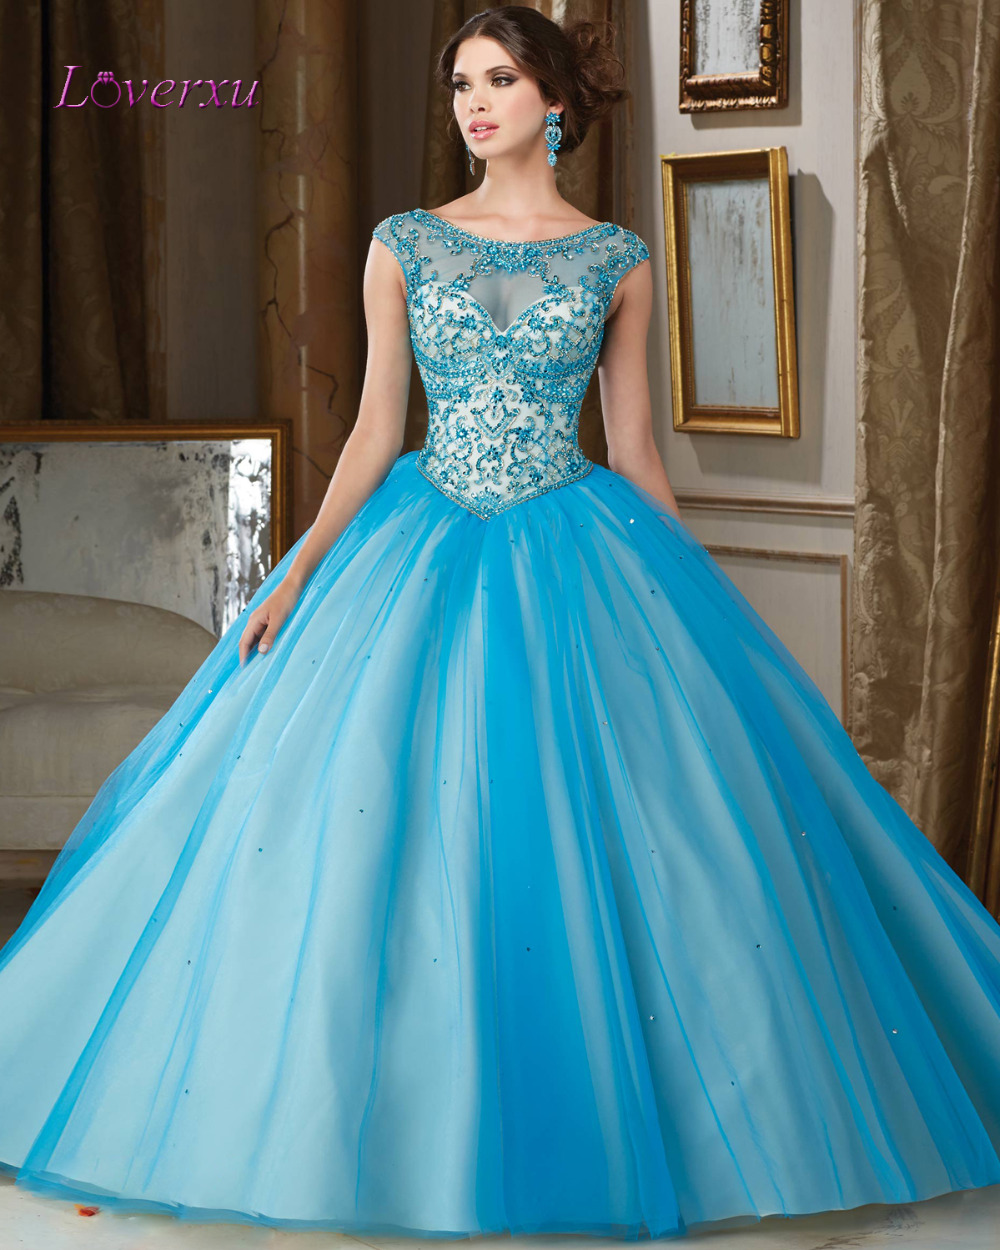 Compare Prices on Blue Ball Gown- Online Shopping/Buy Low Price ...